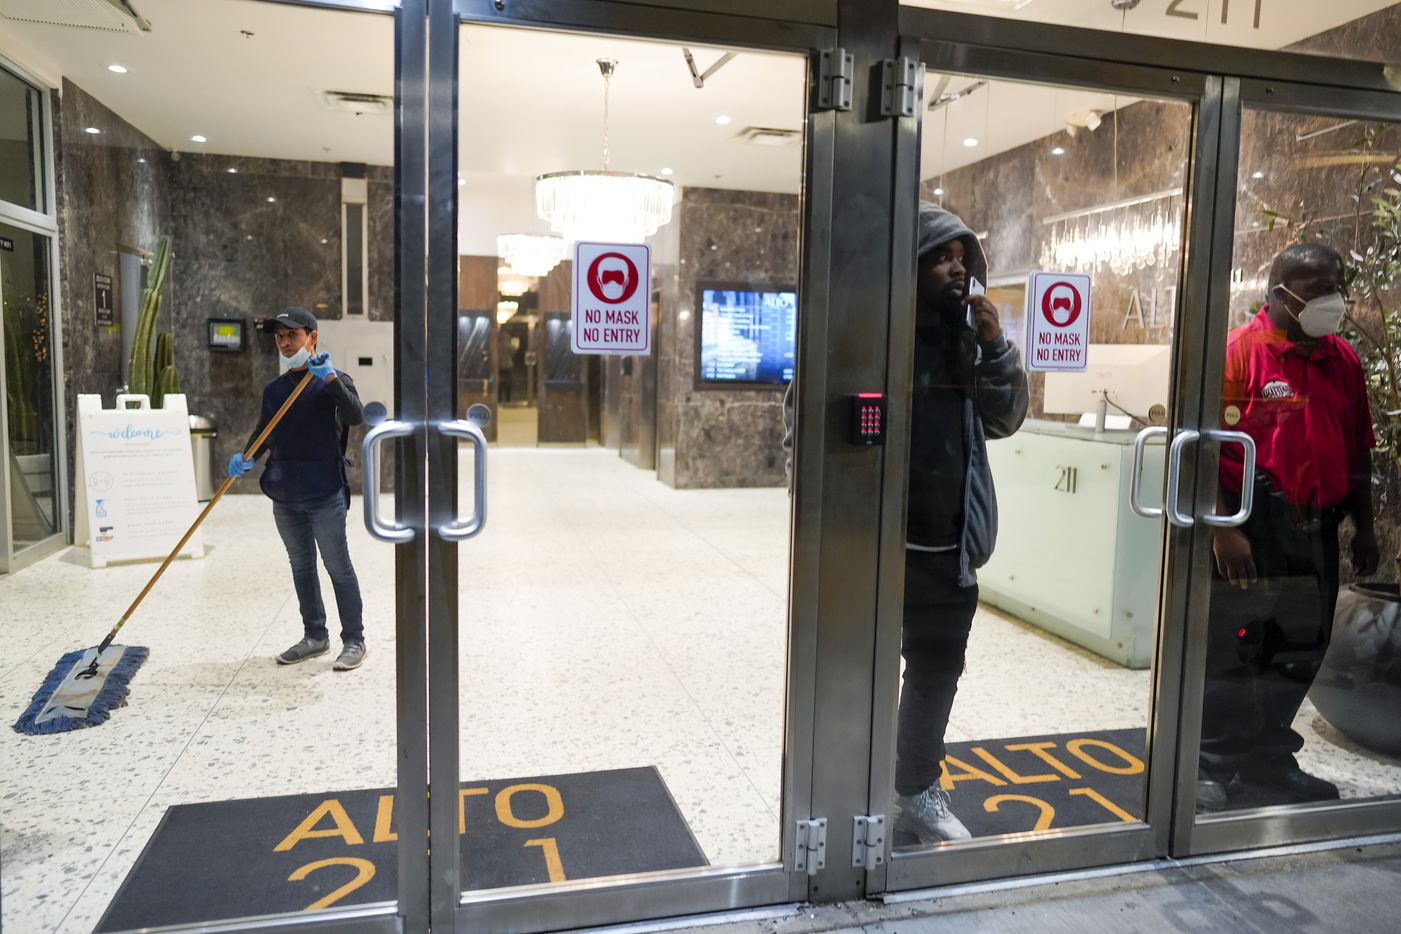 People watch through the doors of Alto 211 on Ervay Street as demonstrators in downtown Dallas after a Kentucky grand jury brought no charges against Louisville police for the killing of Breonna Taylor on Wednesday, Sept. 23, 2020.